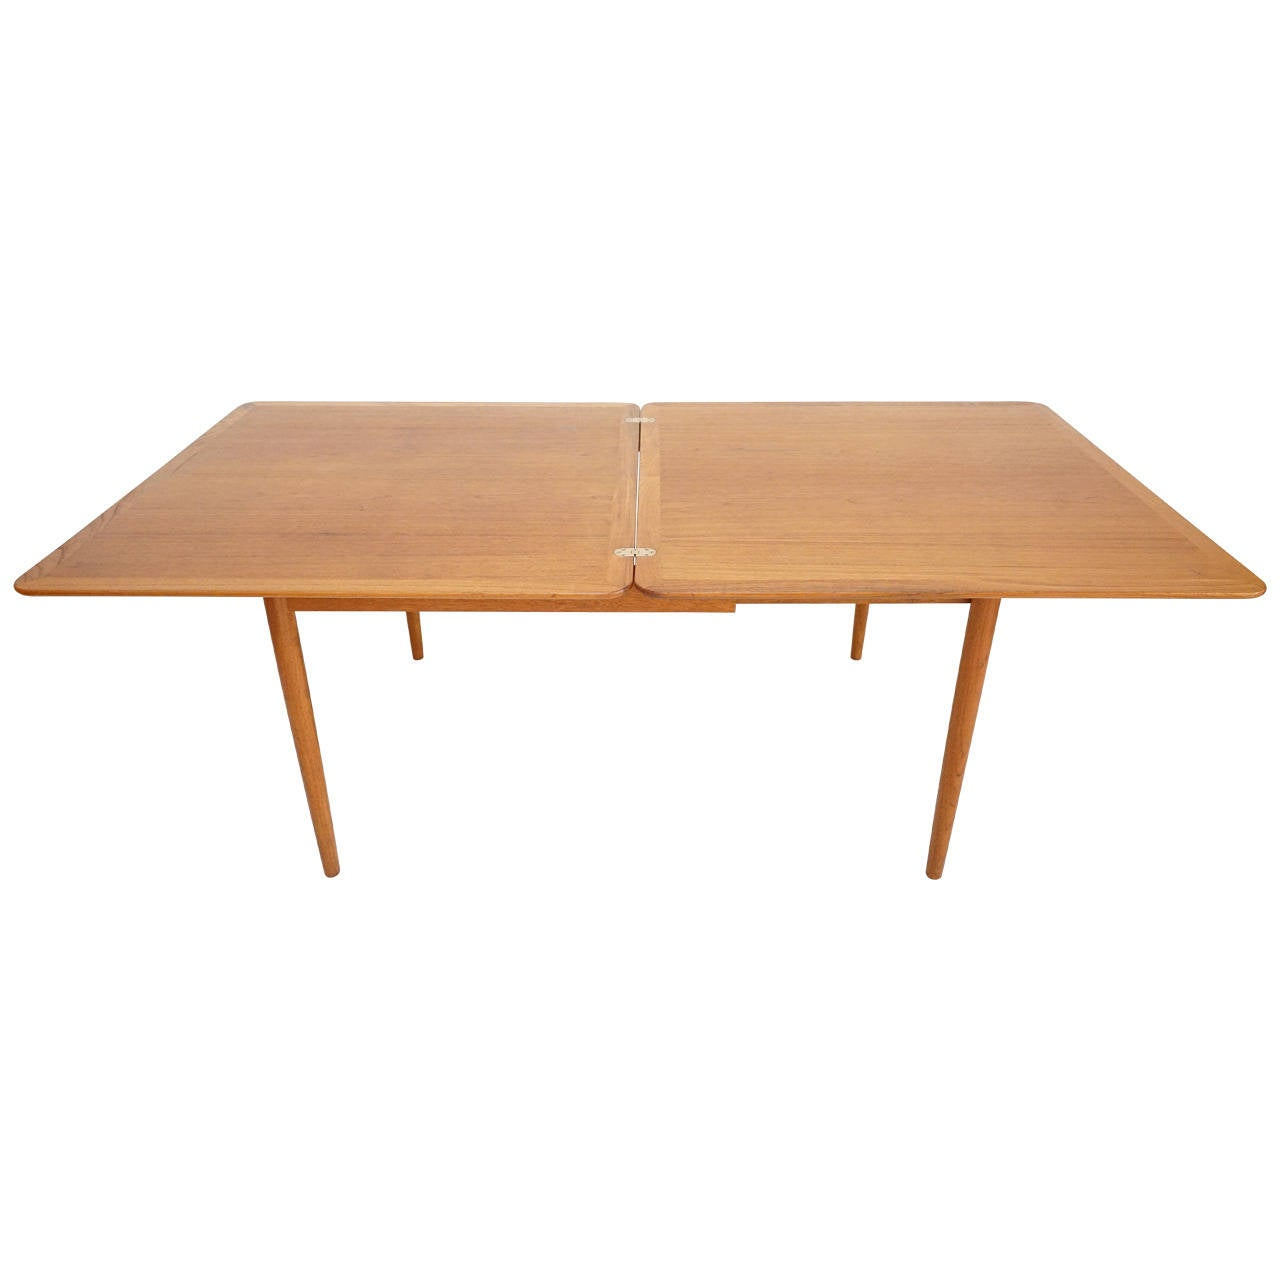 danish modern teak and brass flip top dining table by b rge mogensen at 1stdibs. Black Bedroom Furniture Sets. Home Design Ideas